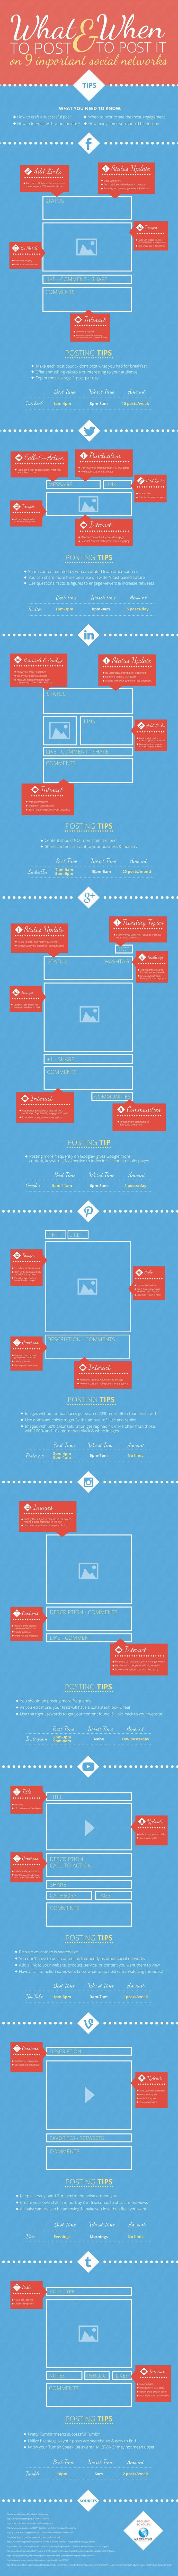 What to post and when to post your content on 9 important #socialmedia sites - #Infographic #marketing